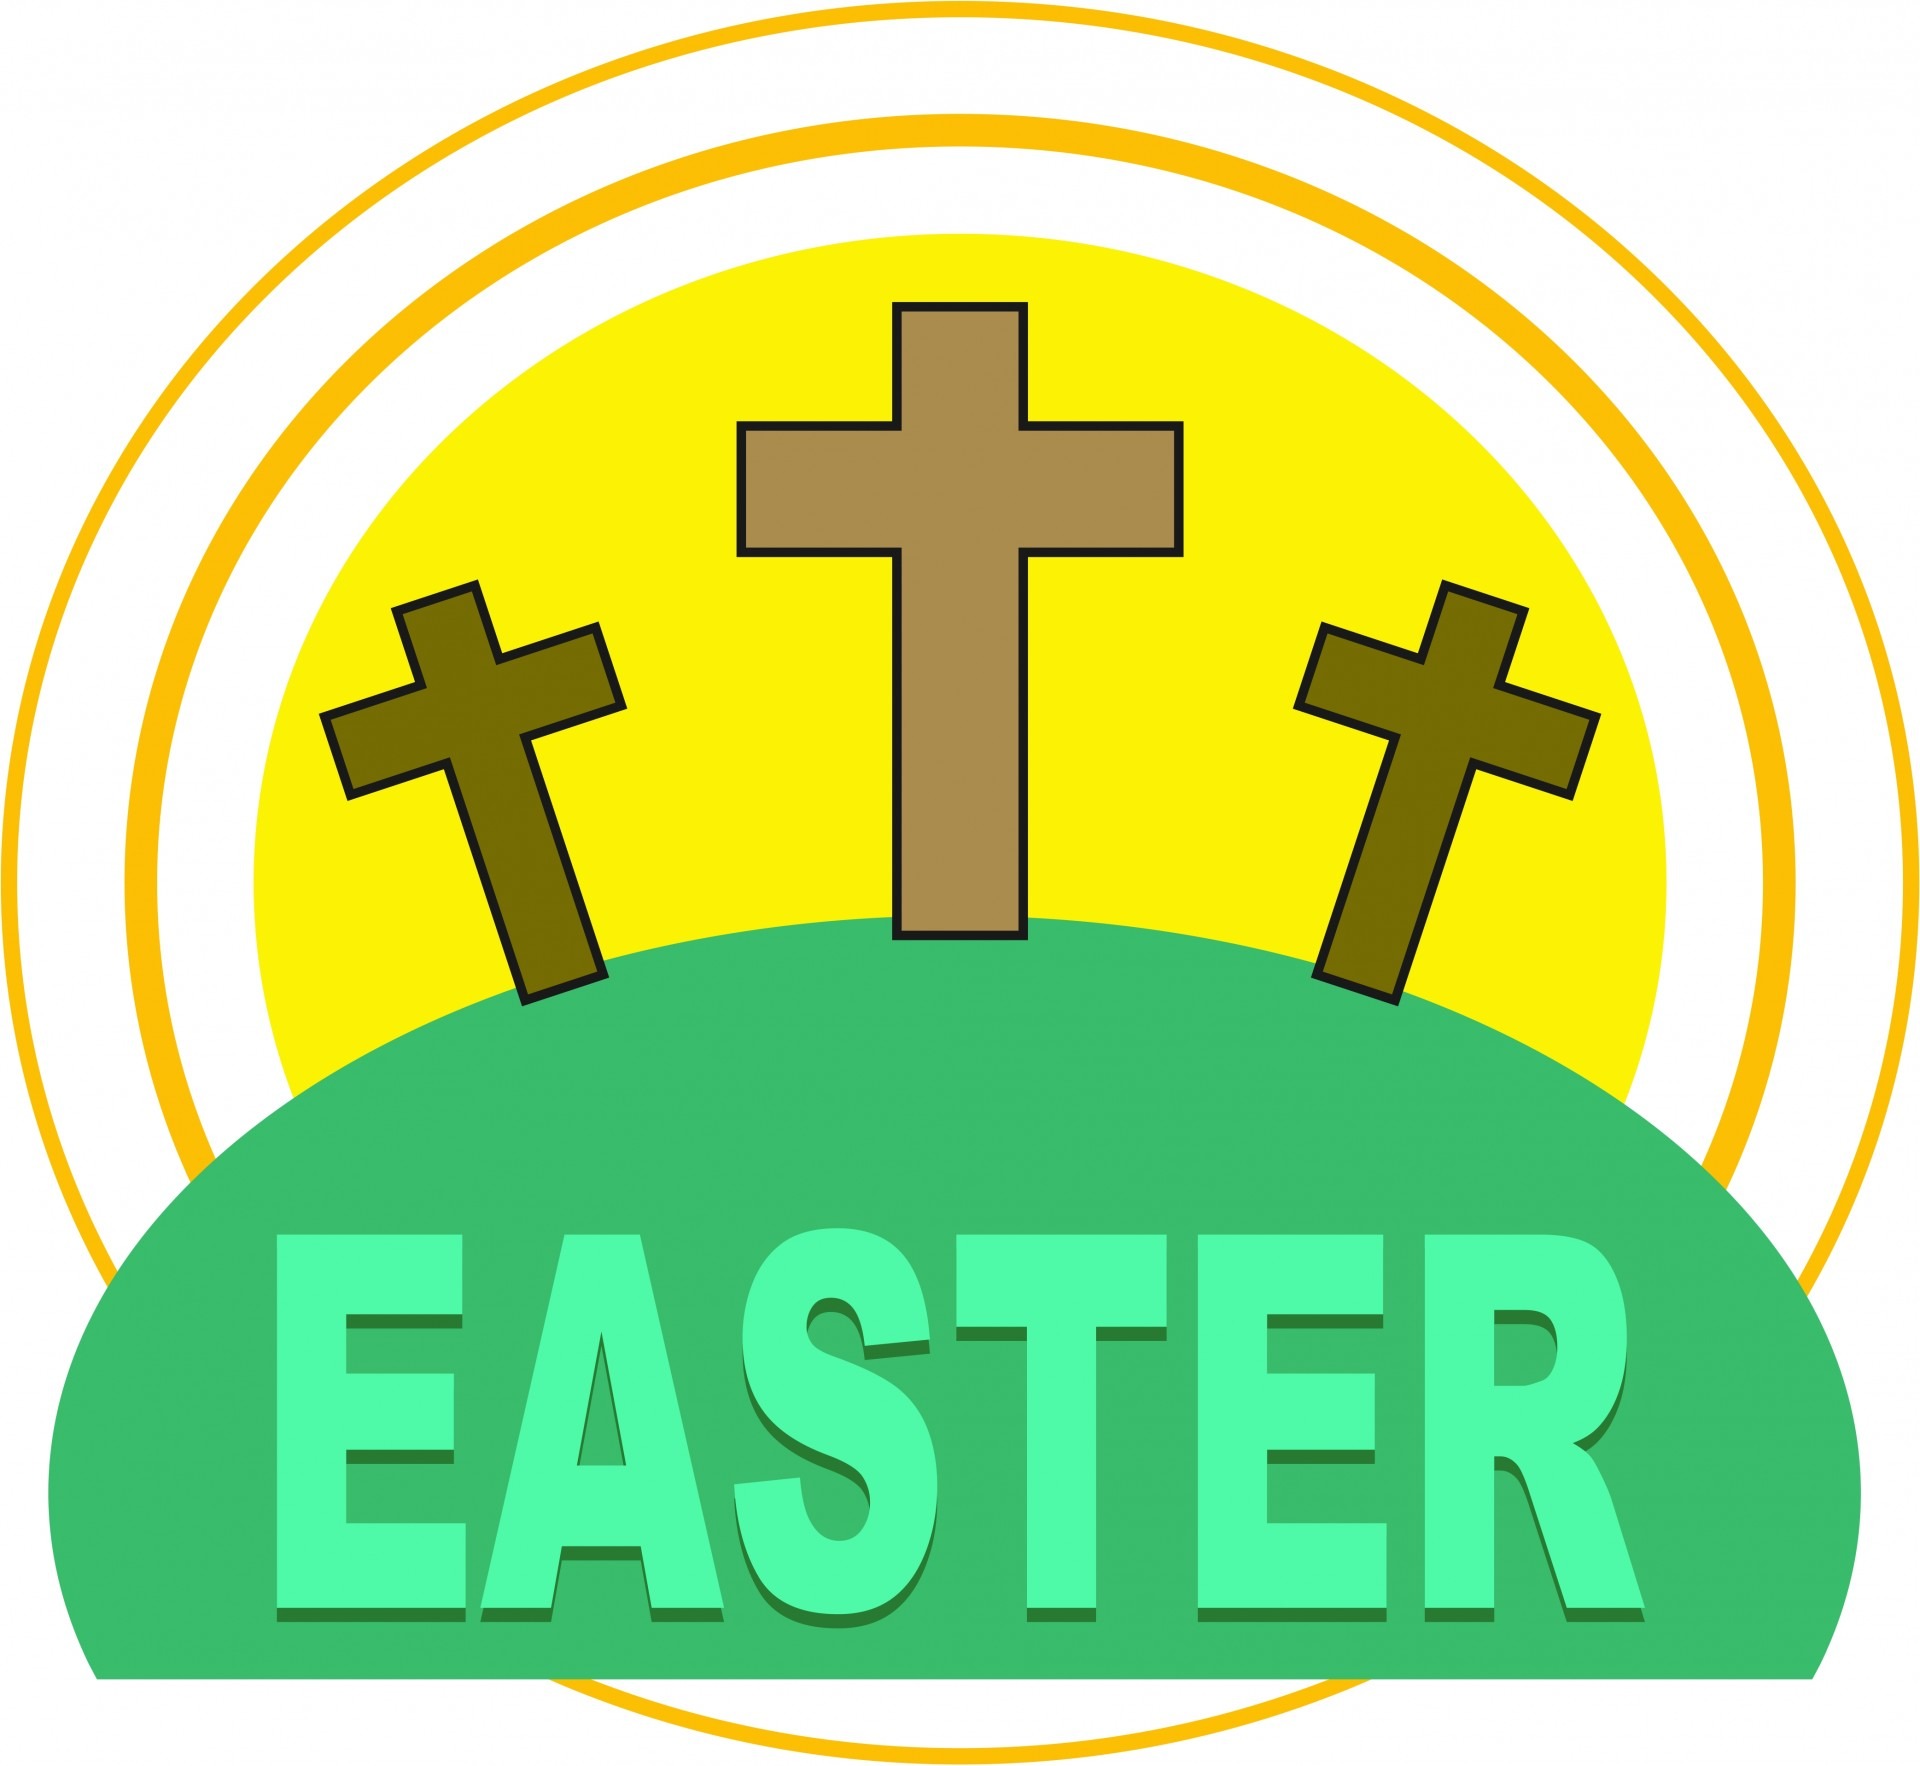 free christian easter clipart at getdrawings com free for personal rh getdrawings com jesus easter clipart christian easter clipart black and white